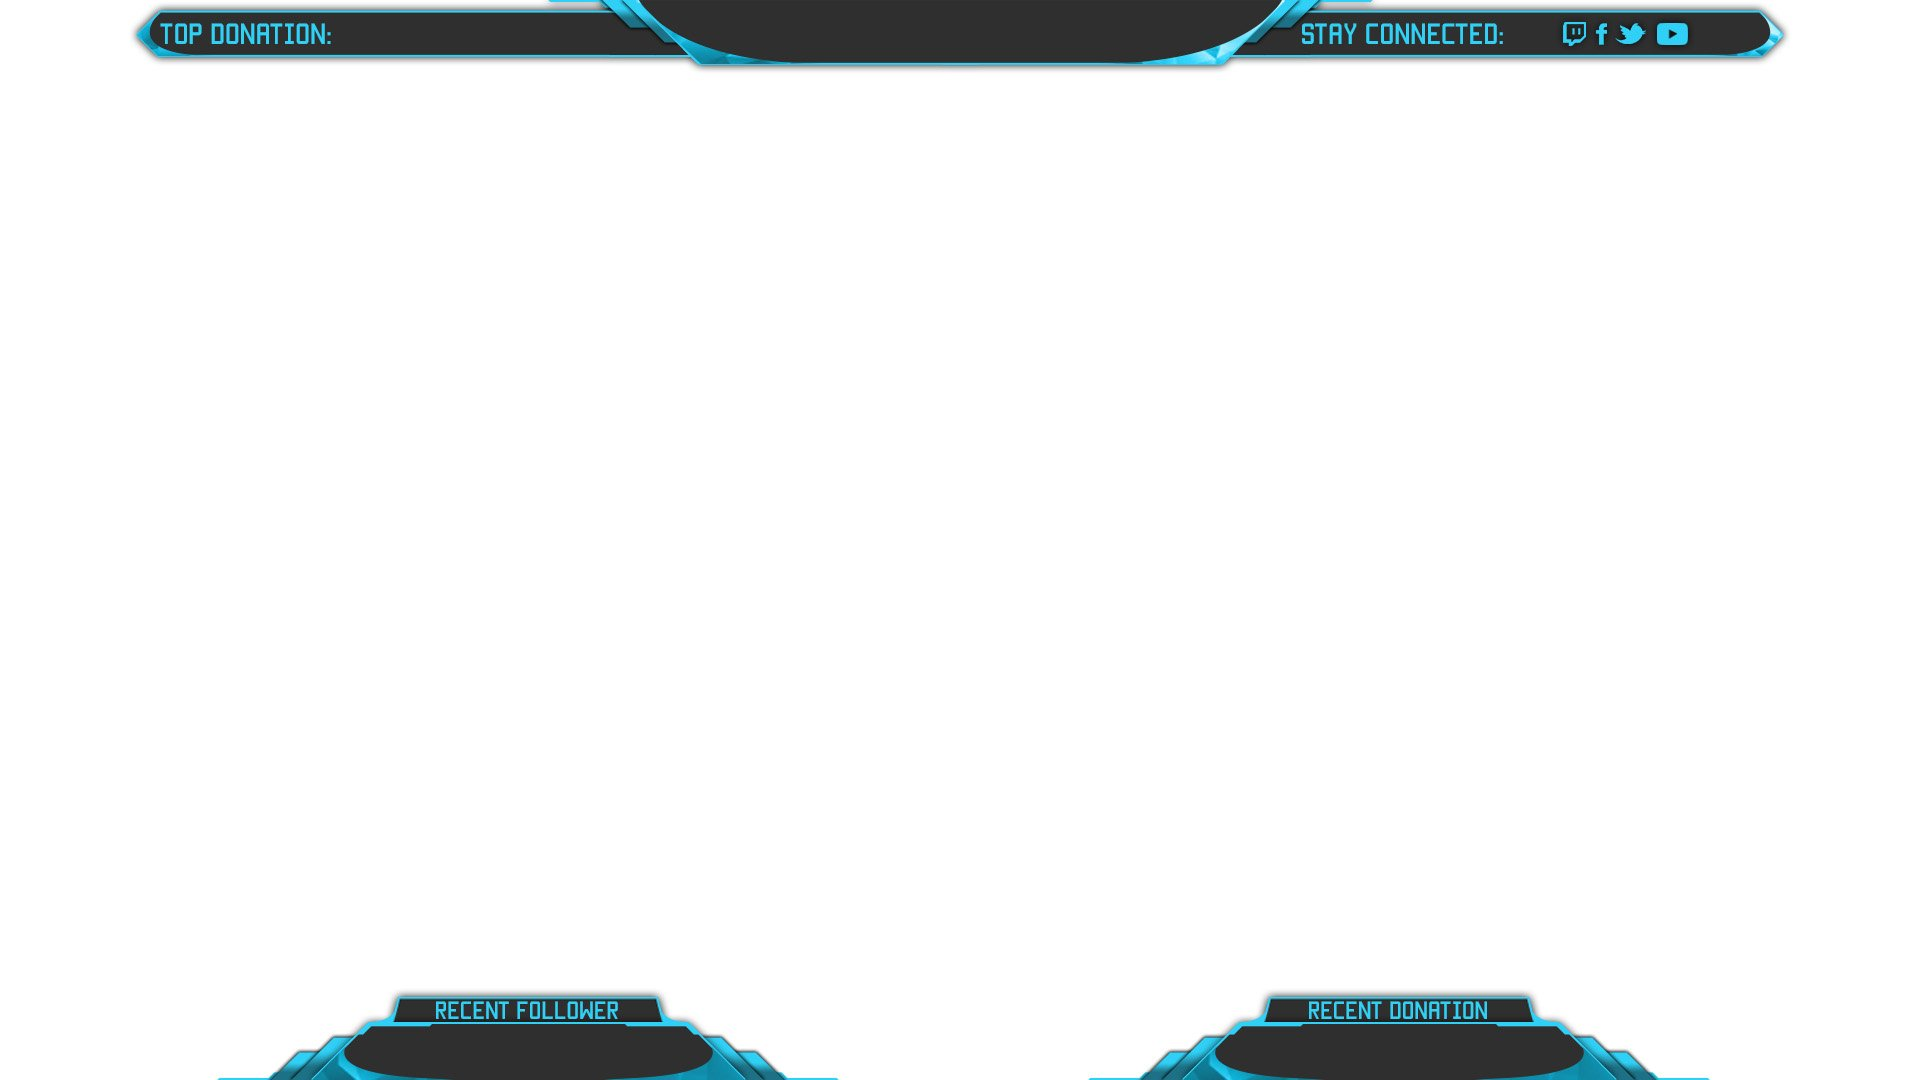 King-Playerunknown-Overlay-Twitch